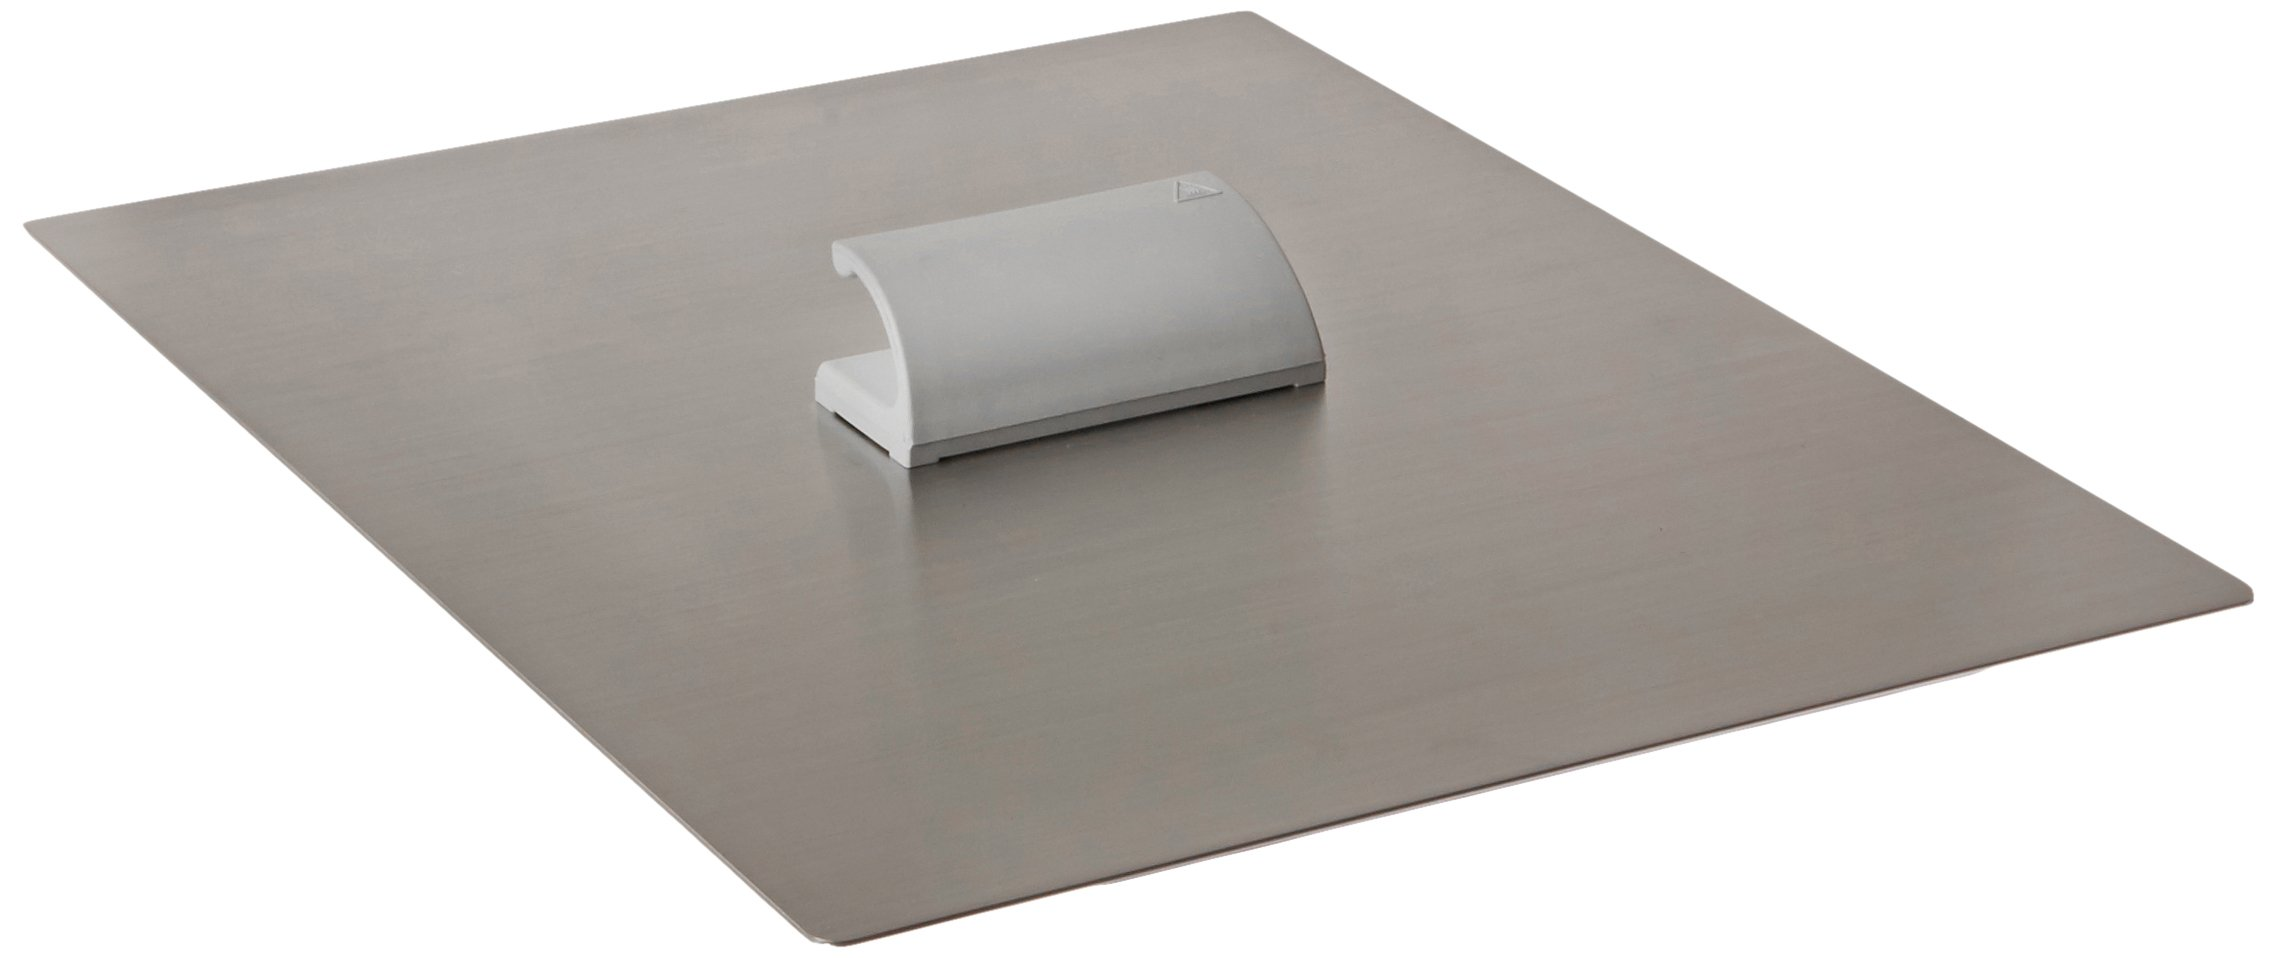 Lauda-Brinkmann HDQ 134 Bath Cover, Stainless Steel with Handle for E 20 S, E20 G, E 25 S and E25 G